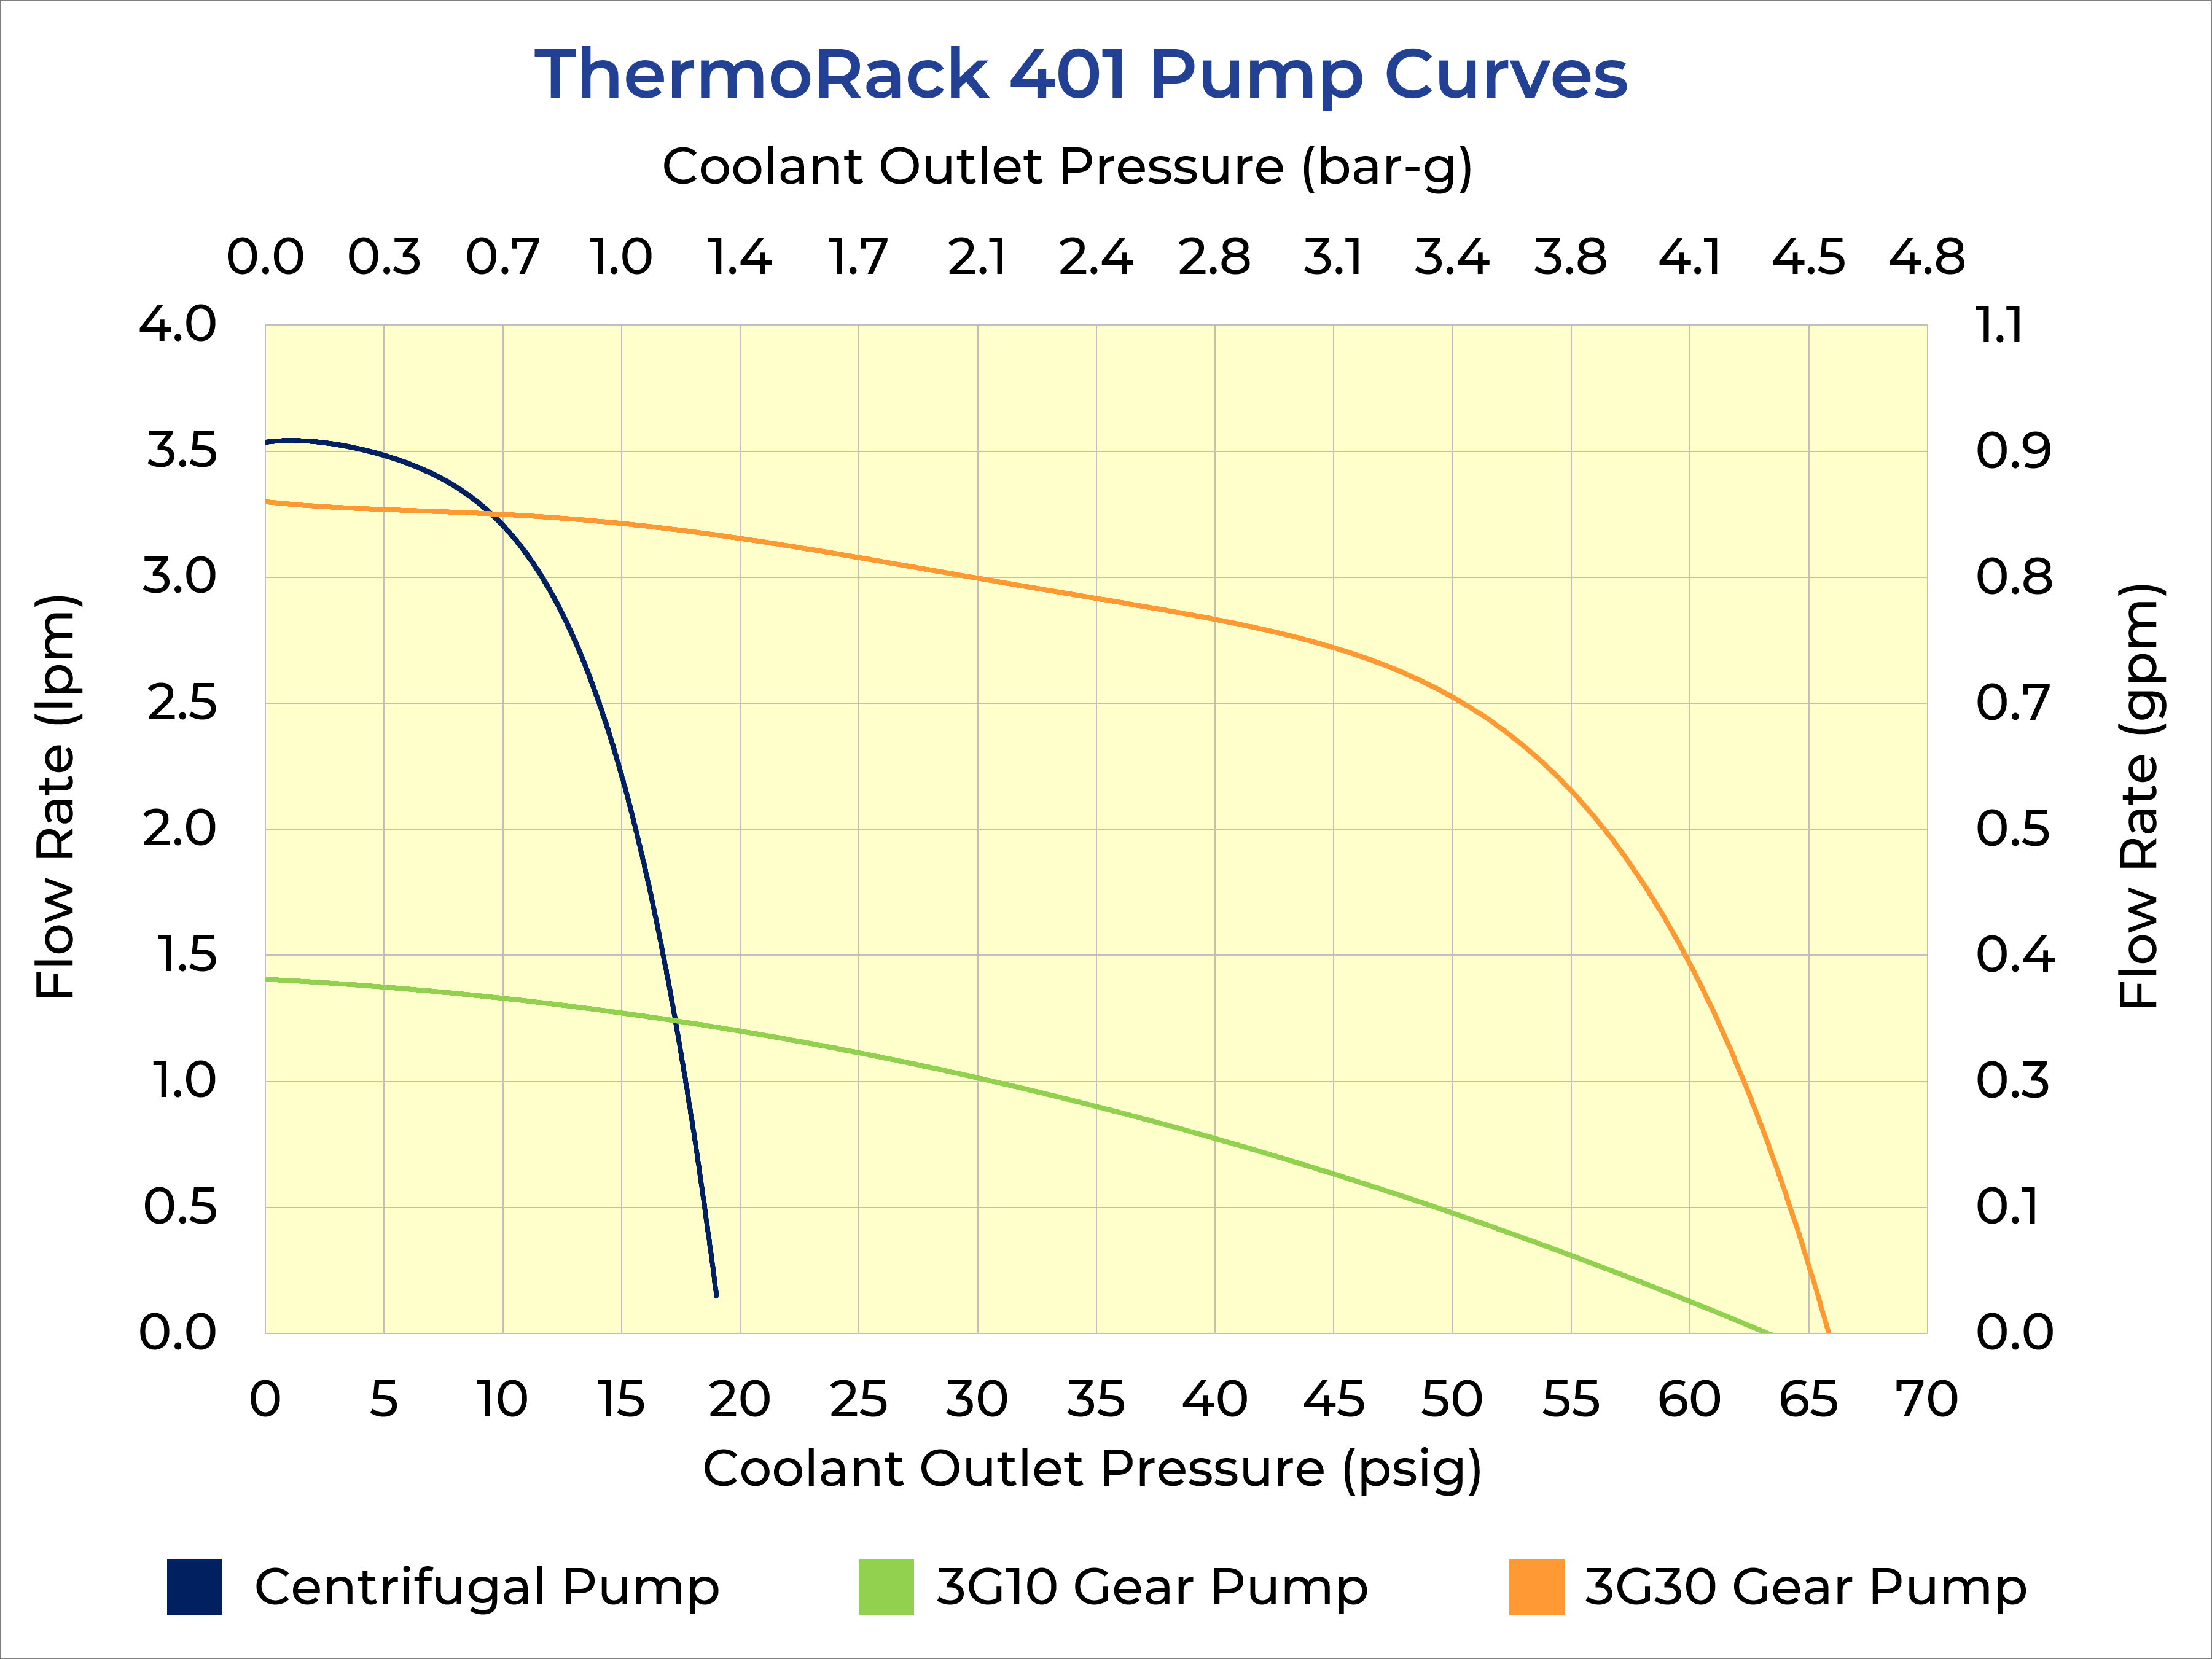 ThermoRack 401 Pump Curves